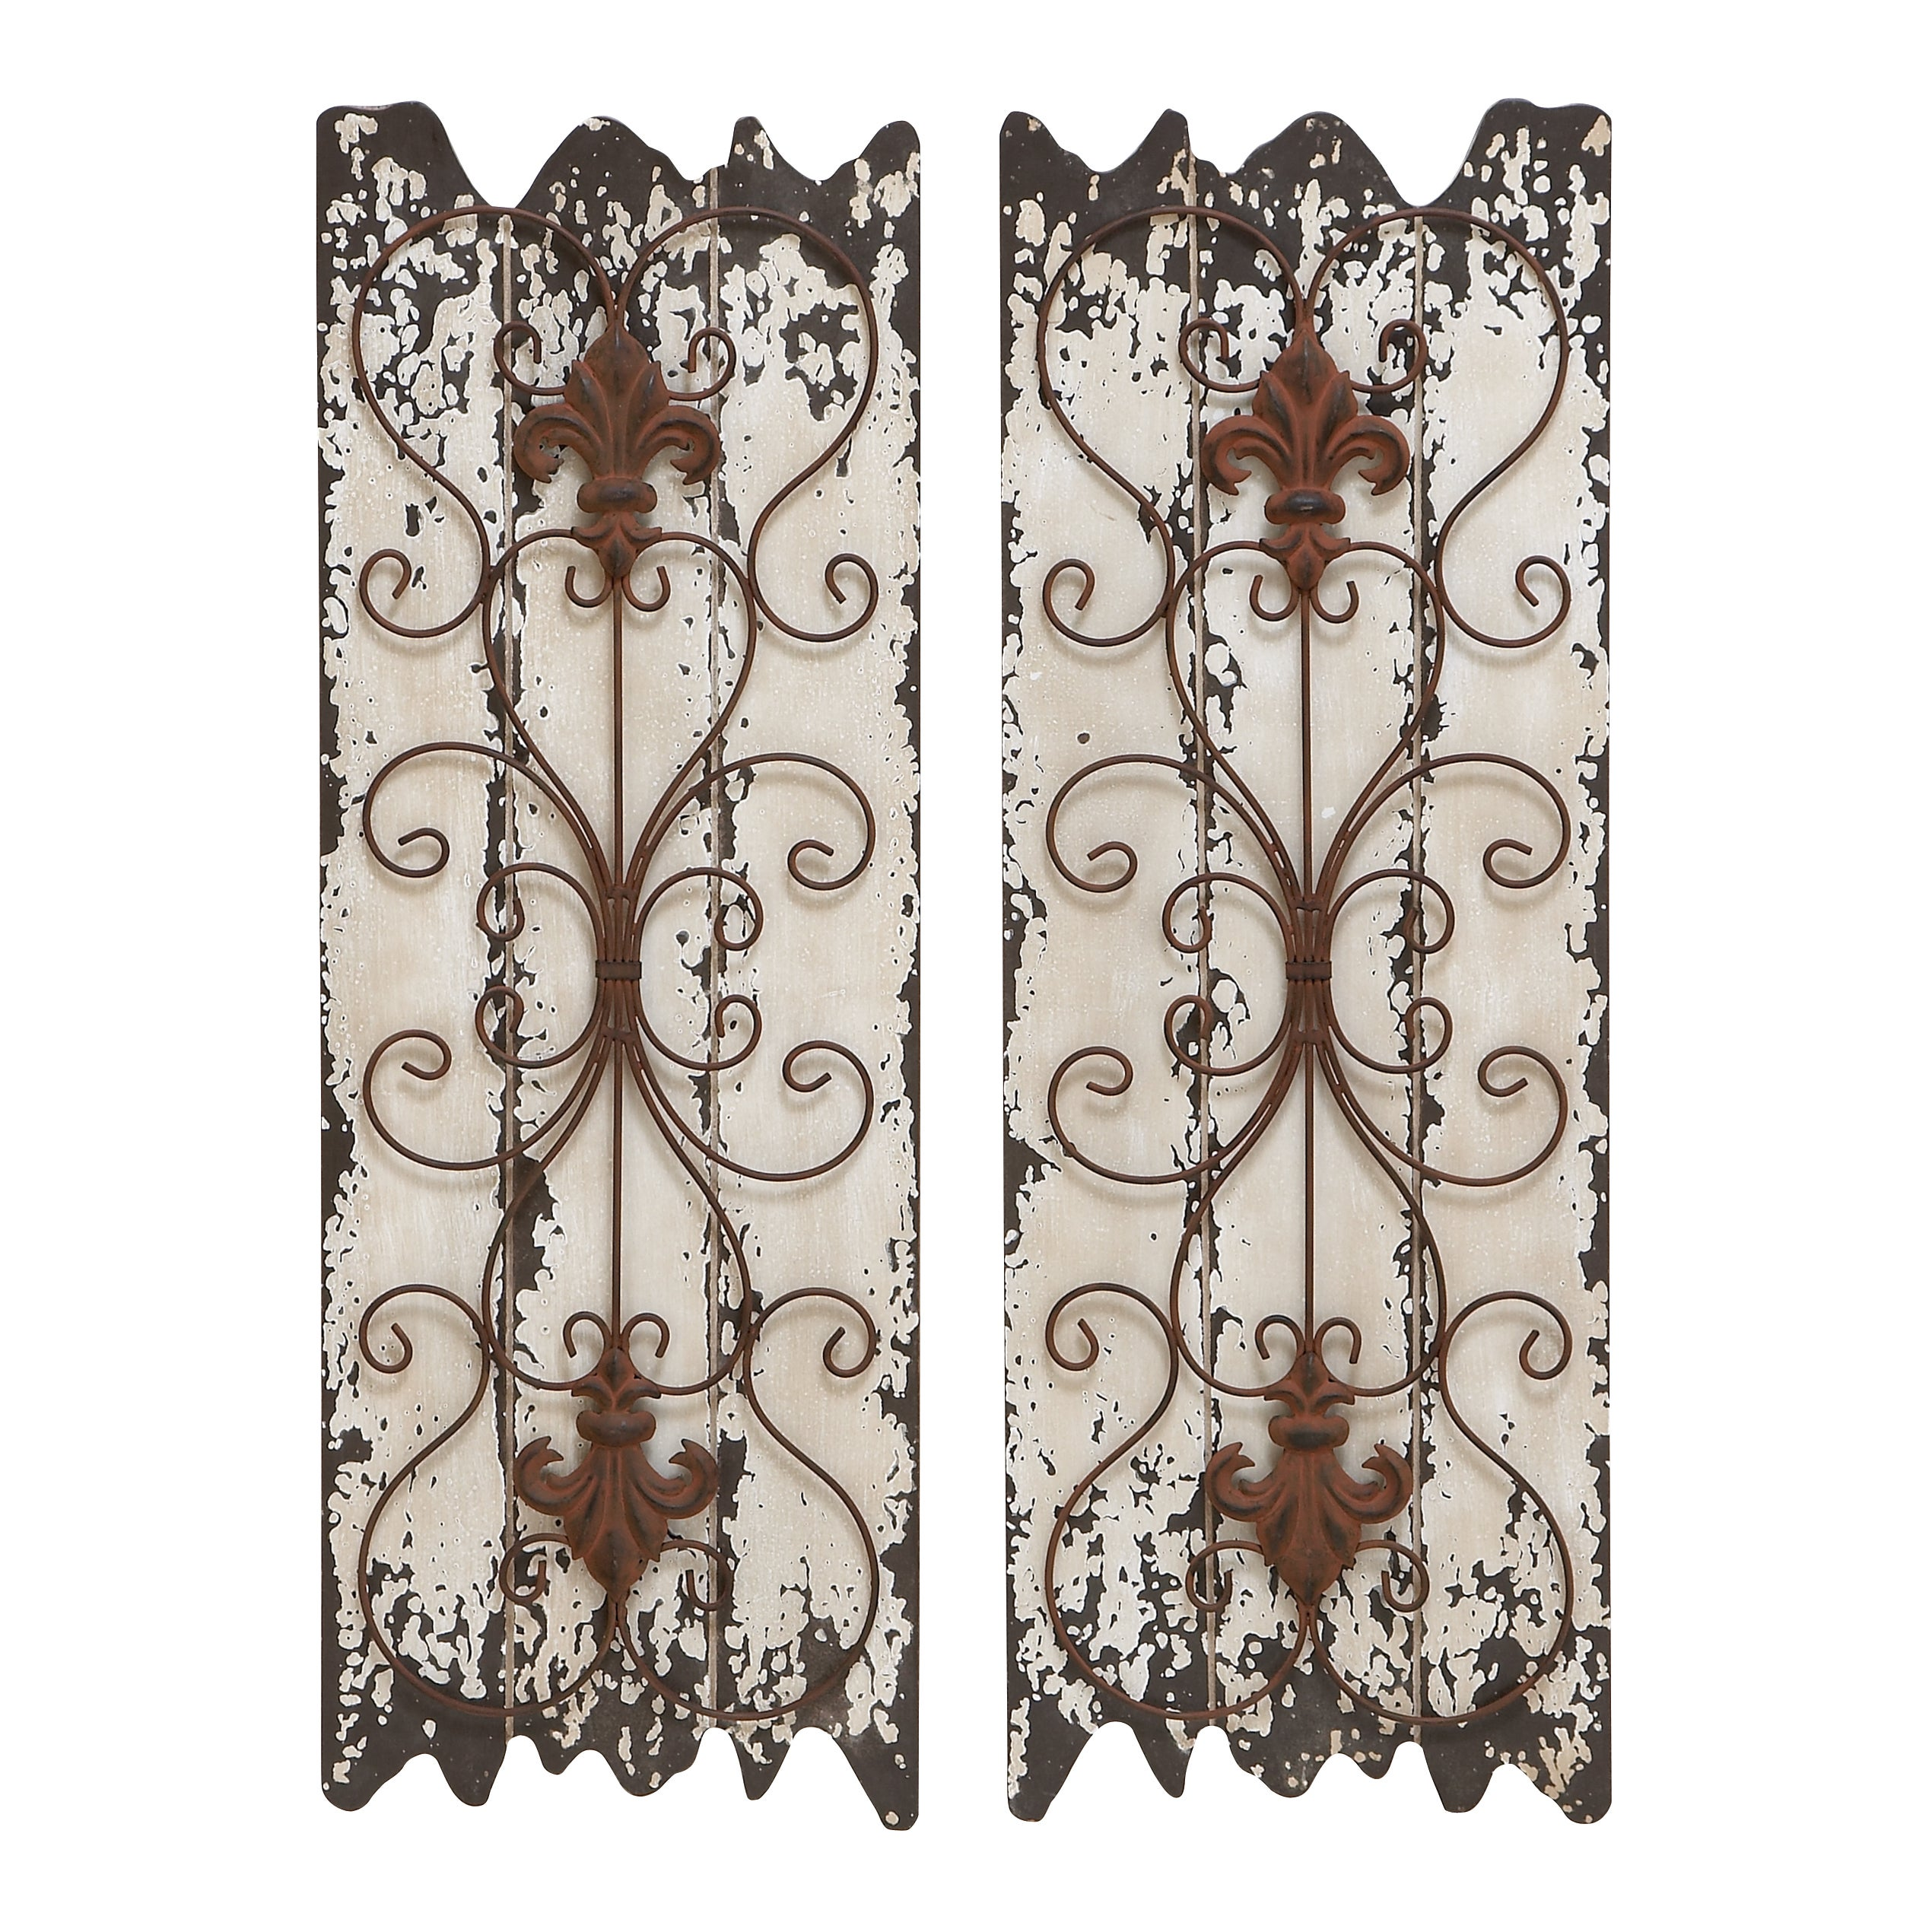 Wood And Metal Wall Decor Wood And Metal Wall Decor Panel Set Of 2  Free Shipping Today